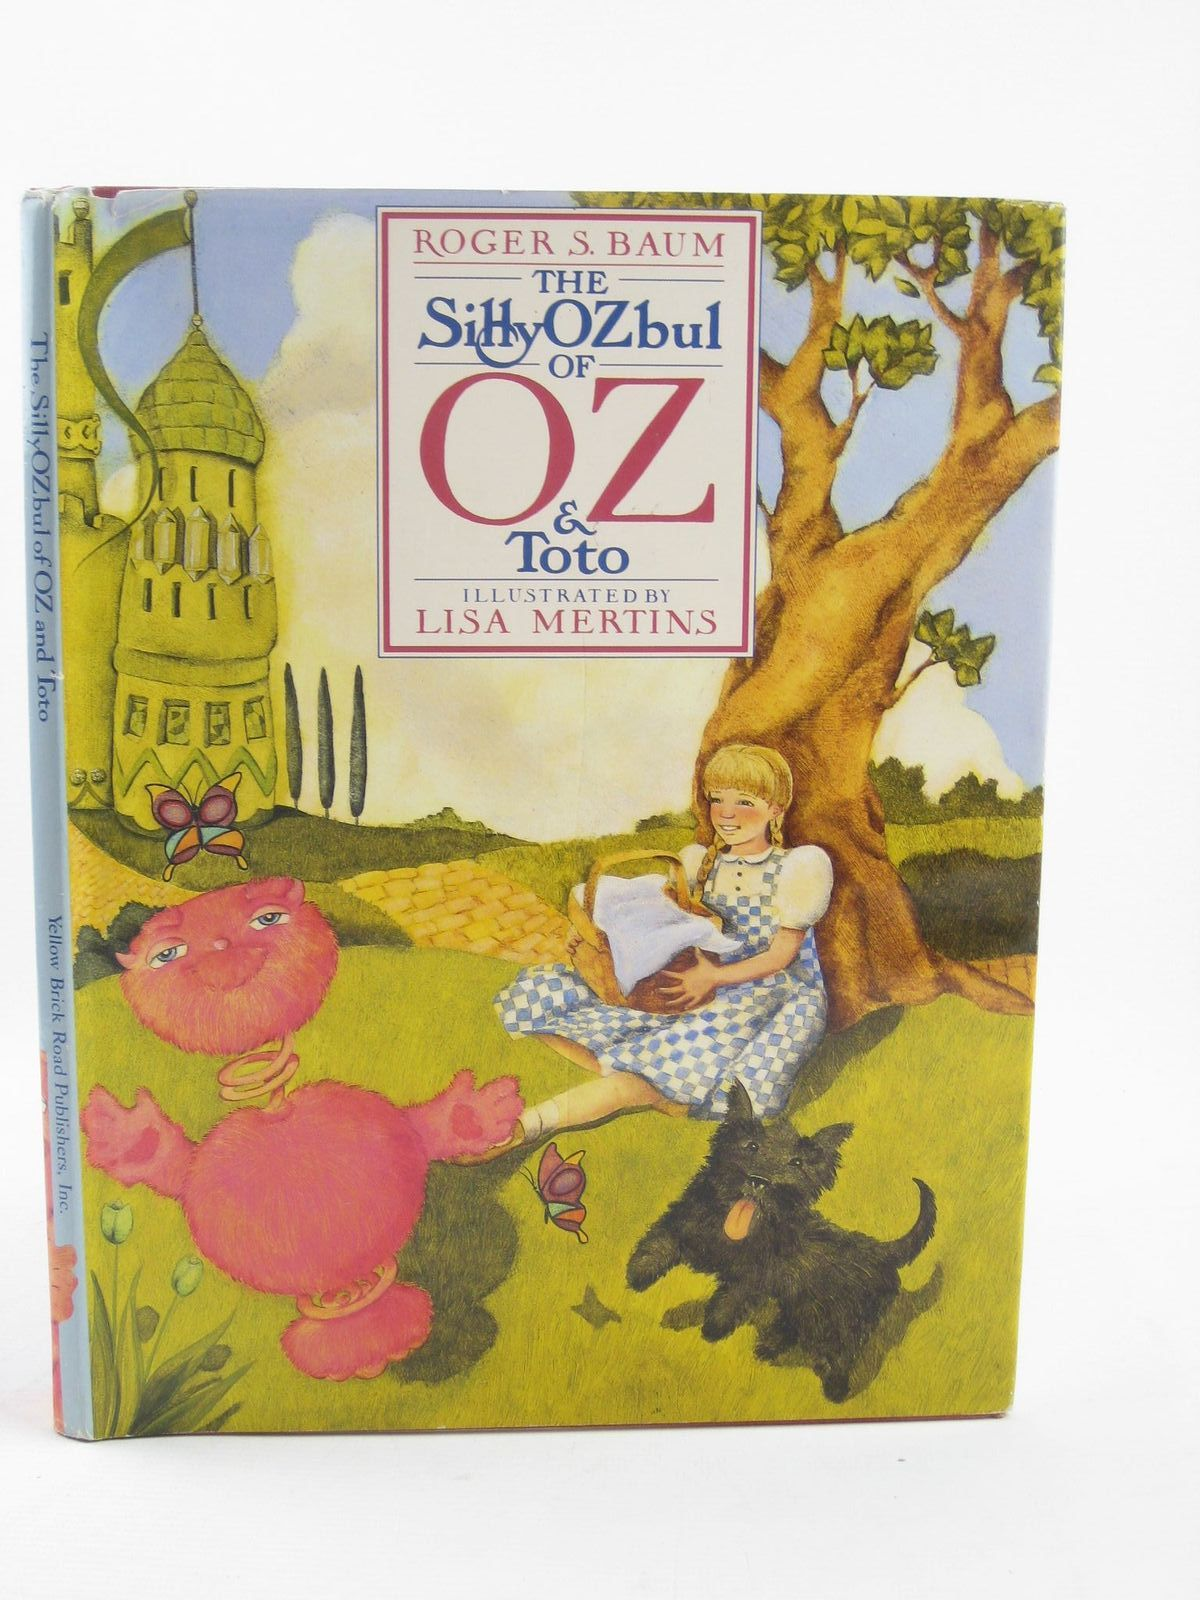 Photo of THE SILLYOZBUL OF OZ AND TOTO written by Baum, Roger S. illustrated by Mertins, Lisa published by Yellow Brick Road Publishers, Inc. (STOCK CODE: 1501979)  for sale by Stella & Rose's Books